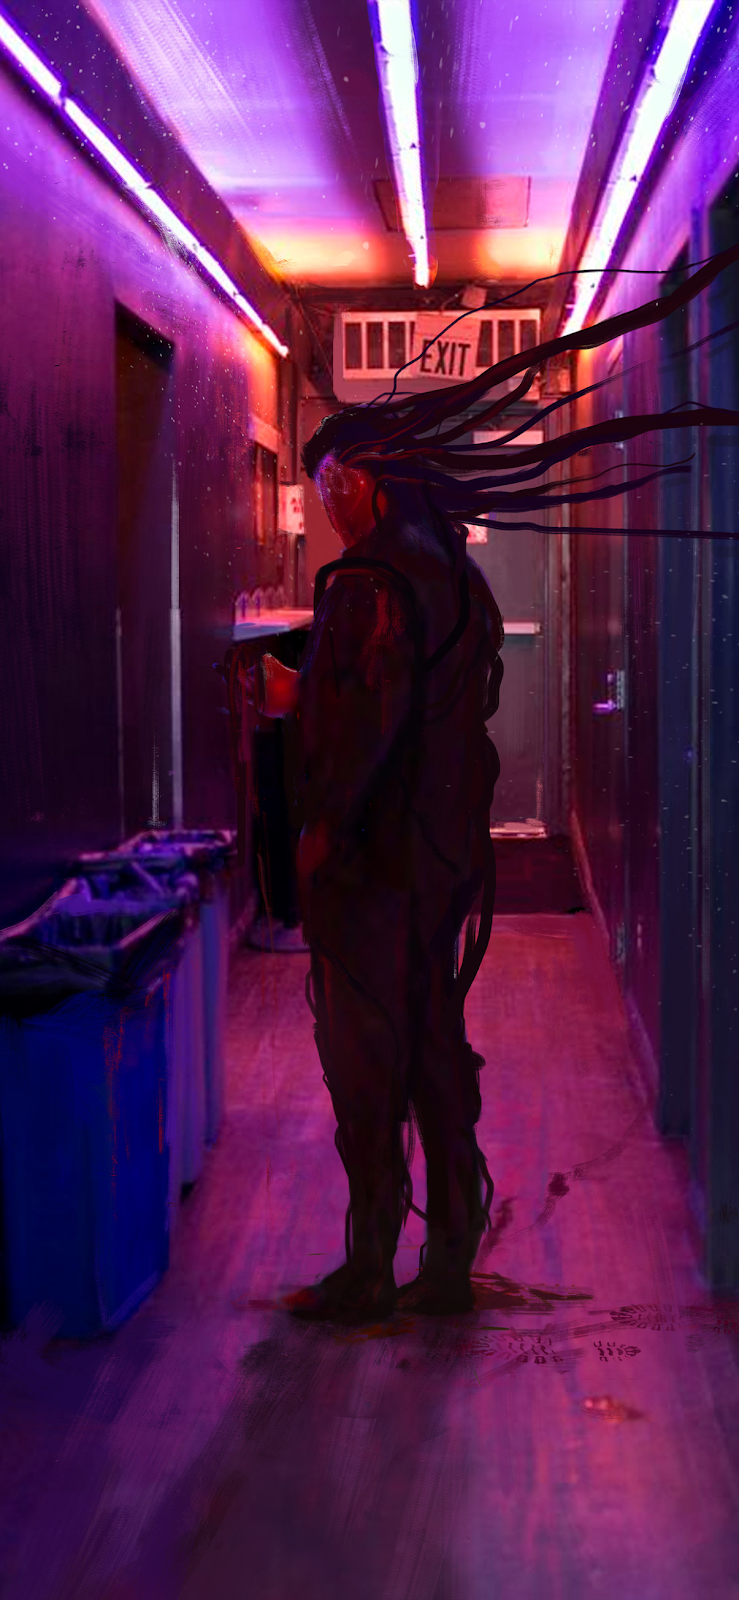 cyberpunk iphone or android wallpaper